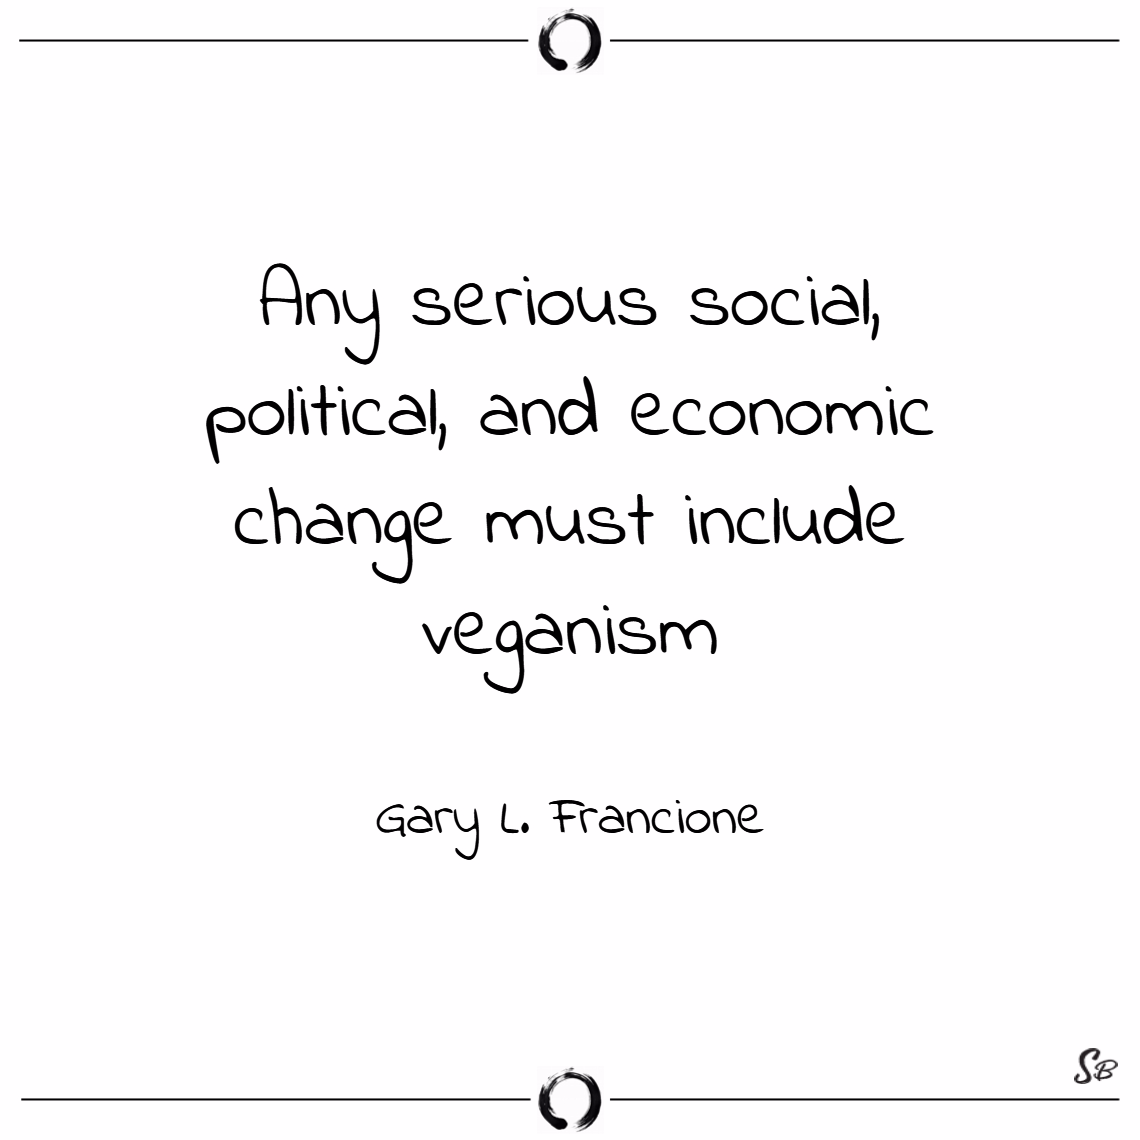 Any serious social, political, and economic change must include veganism. – gary l. francione